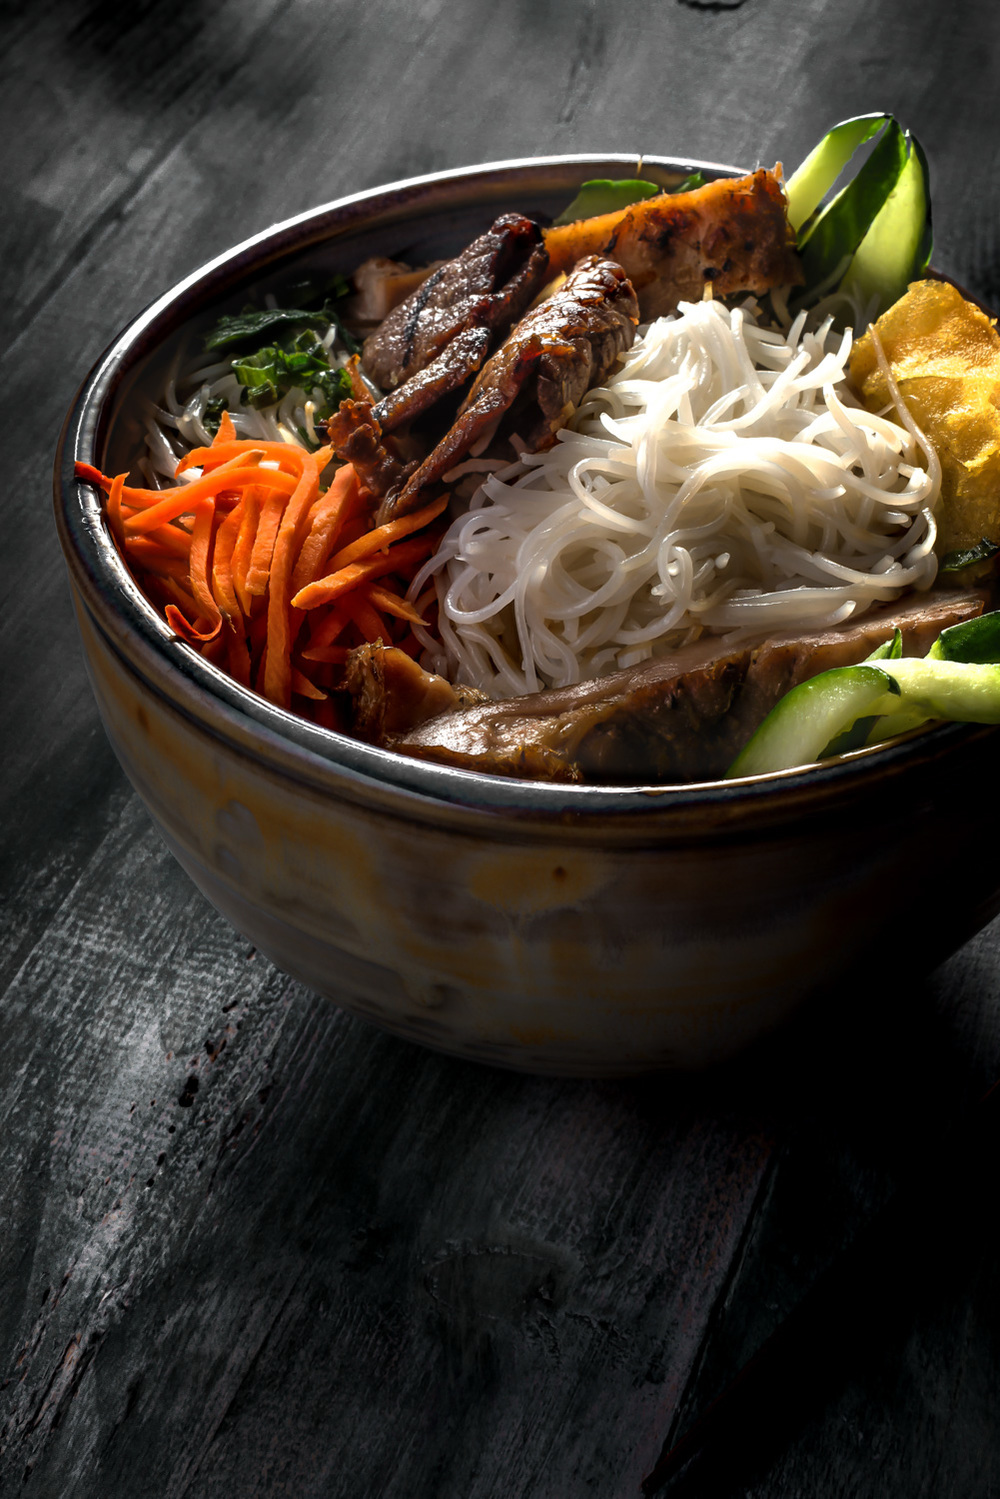 Chinees noodles with BBQ beef-23-Edit-Edit-2-Edit-Edit.JPG